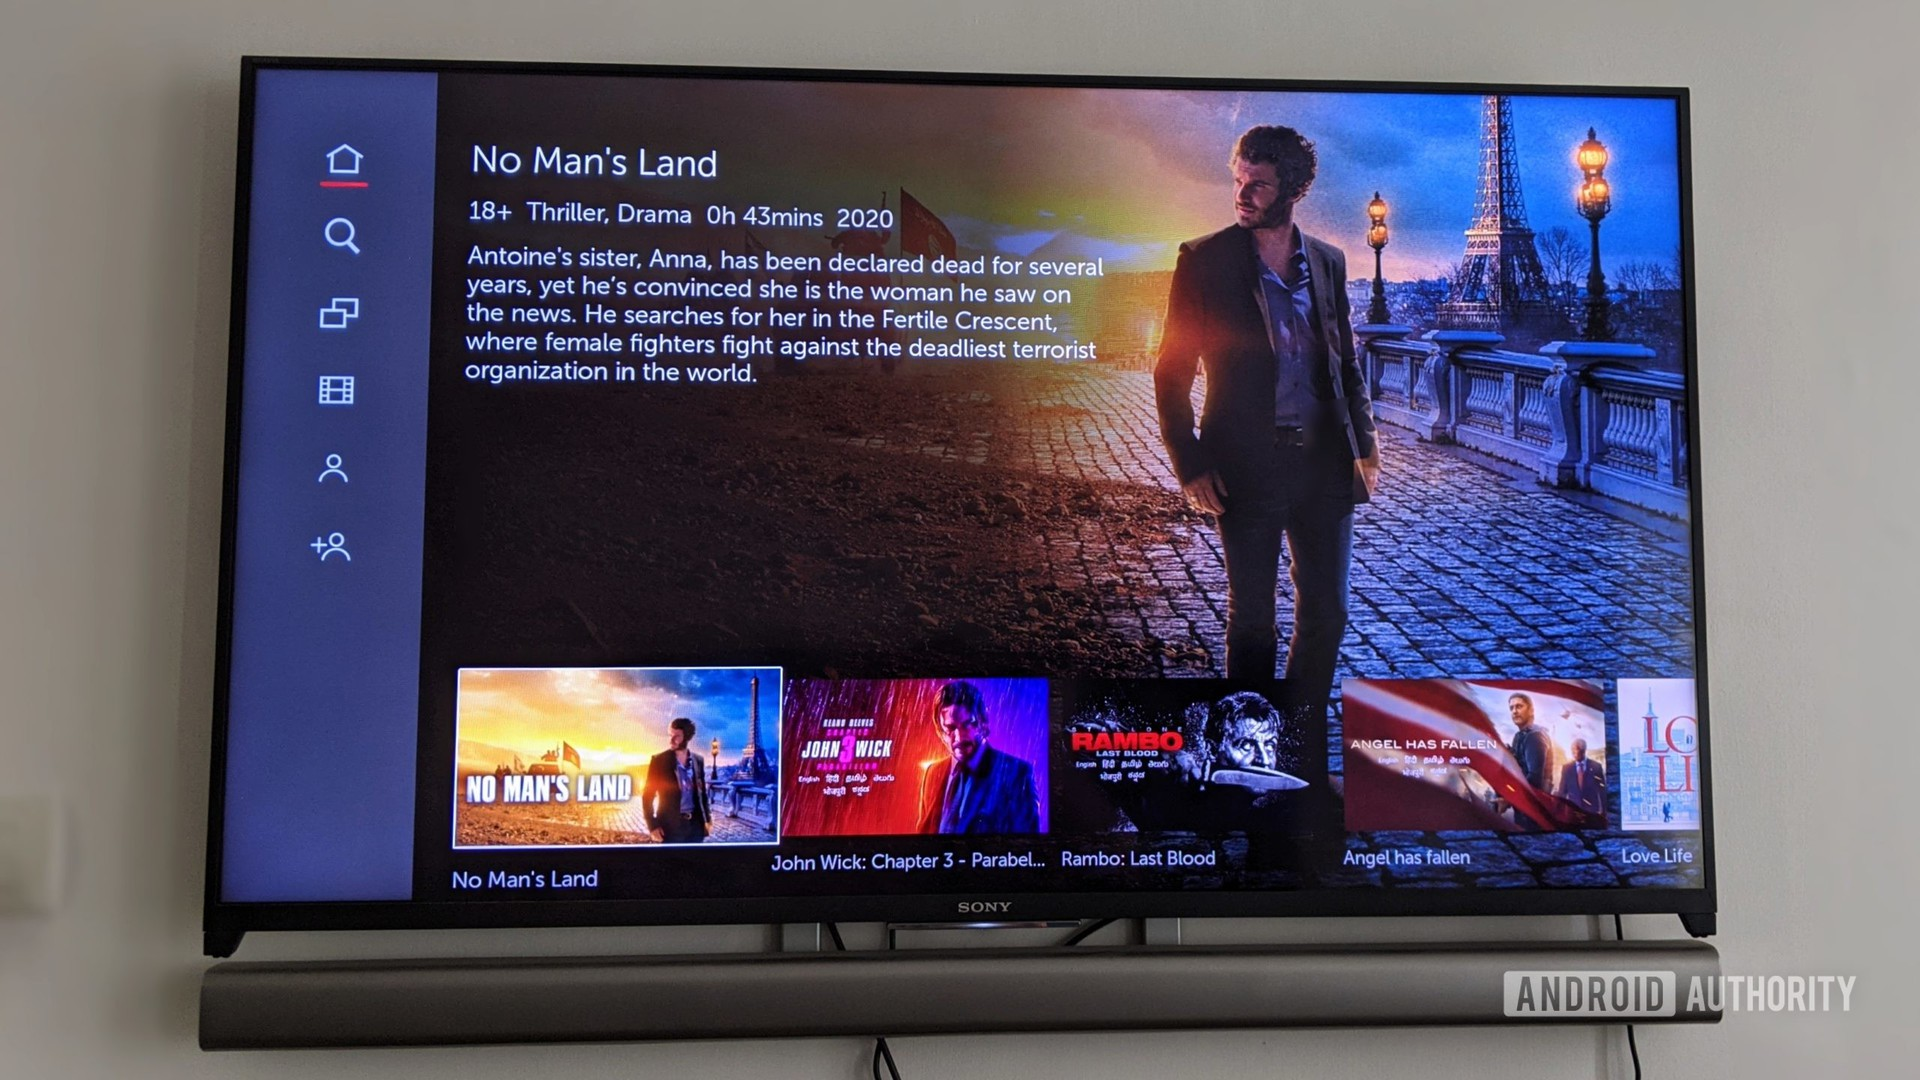 Lionsgate Play app on Sony Android TV